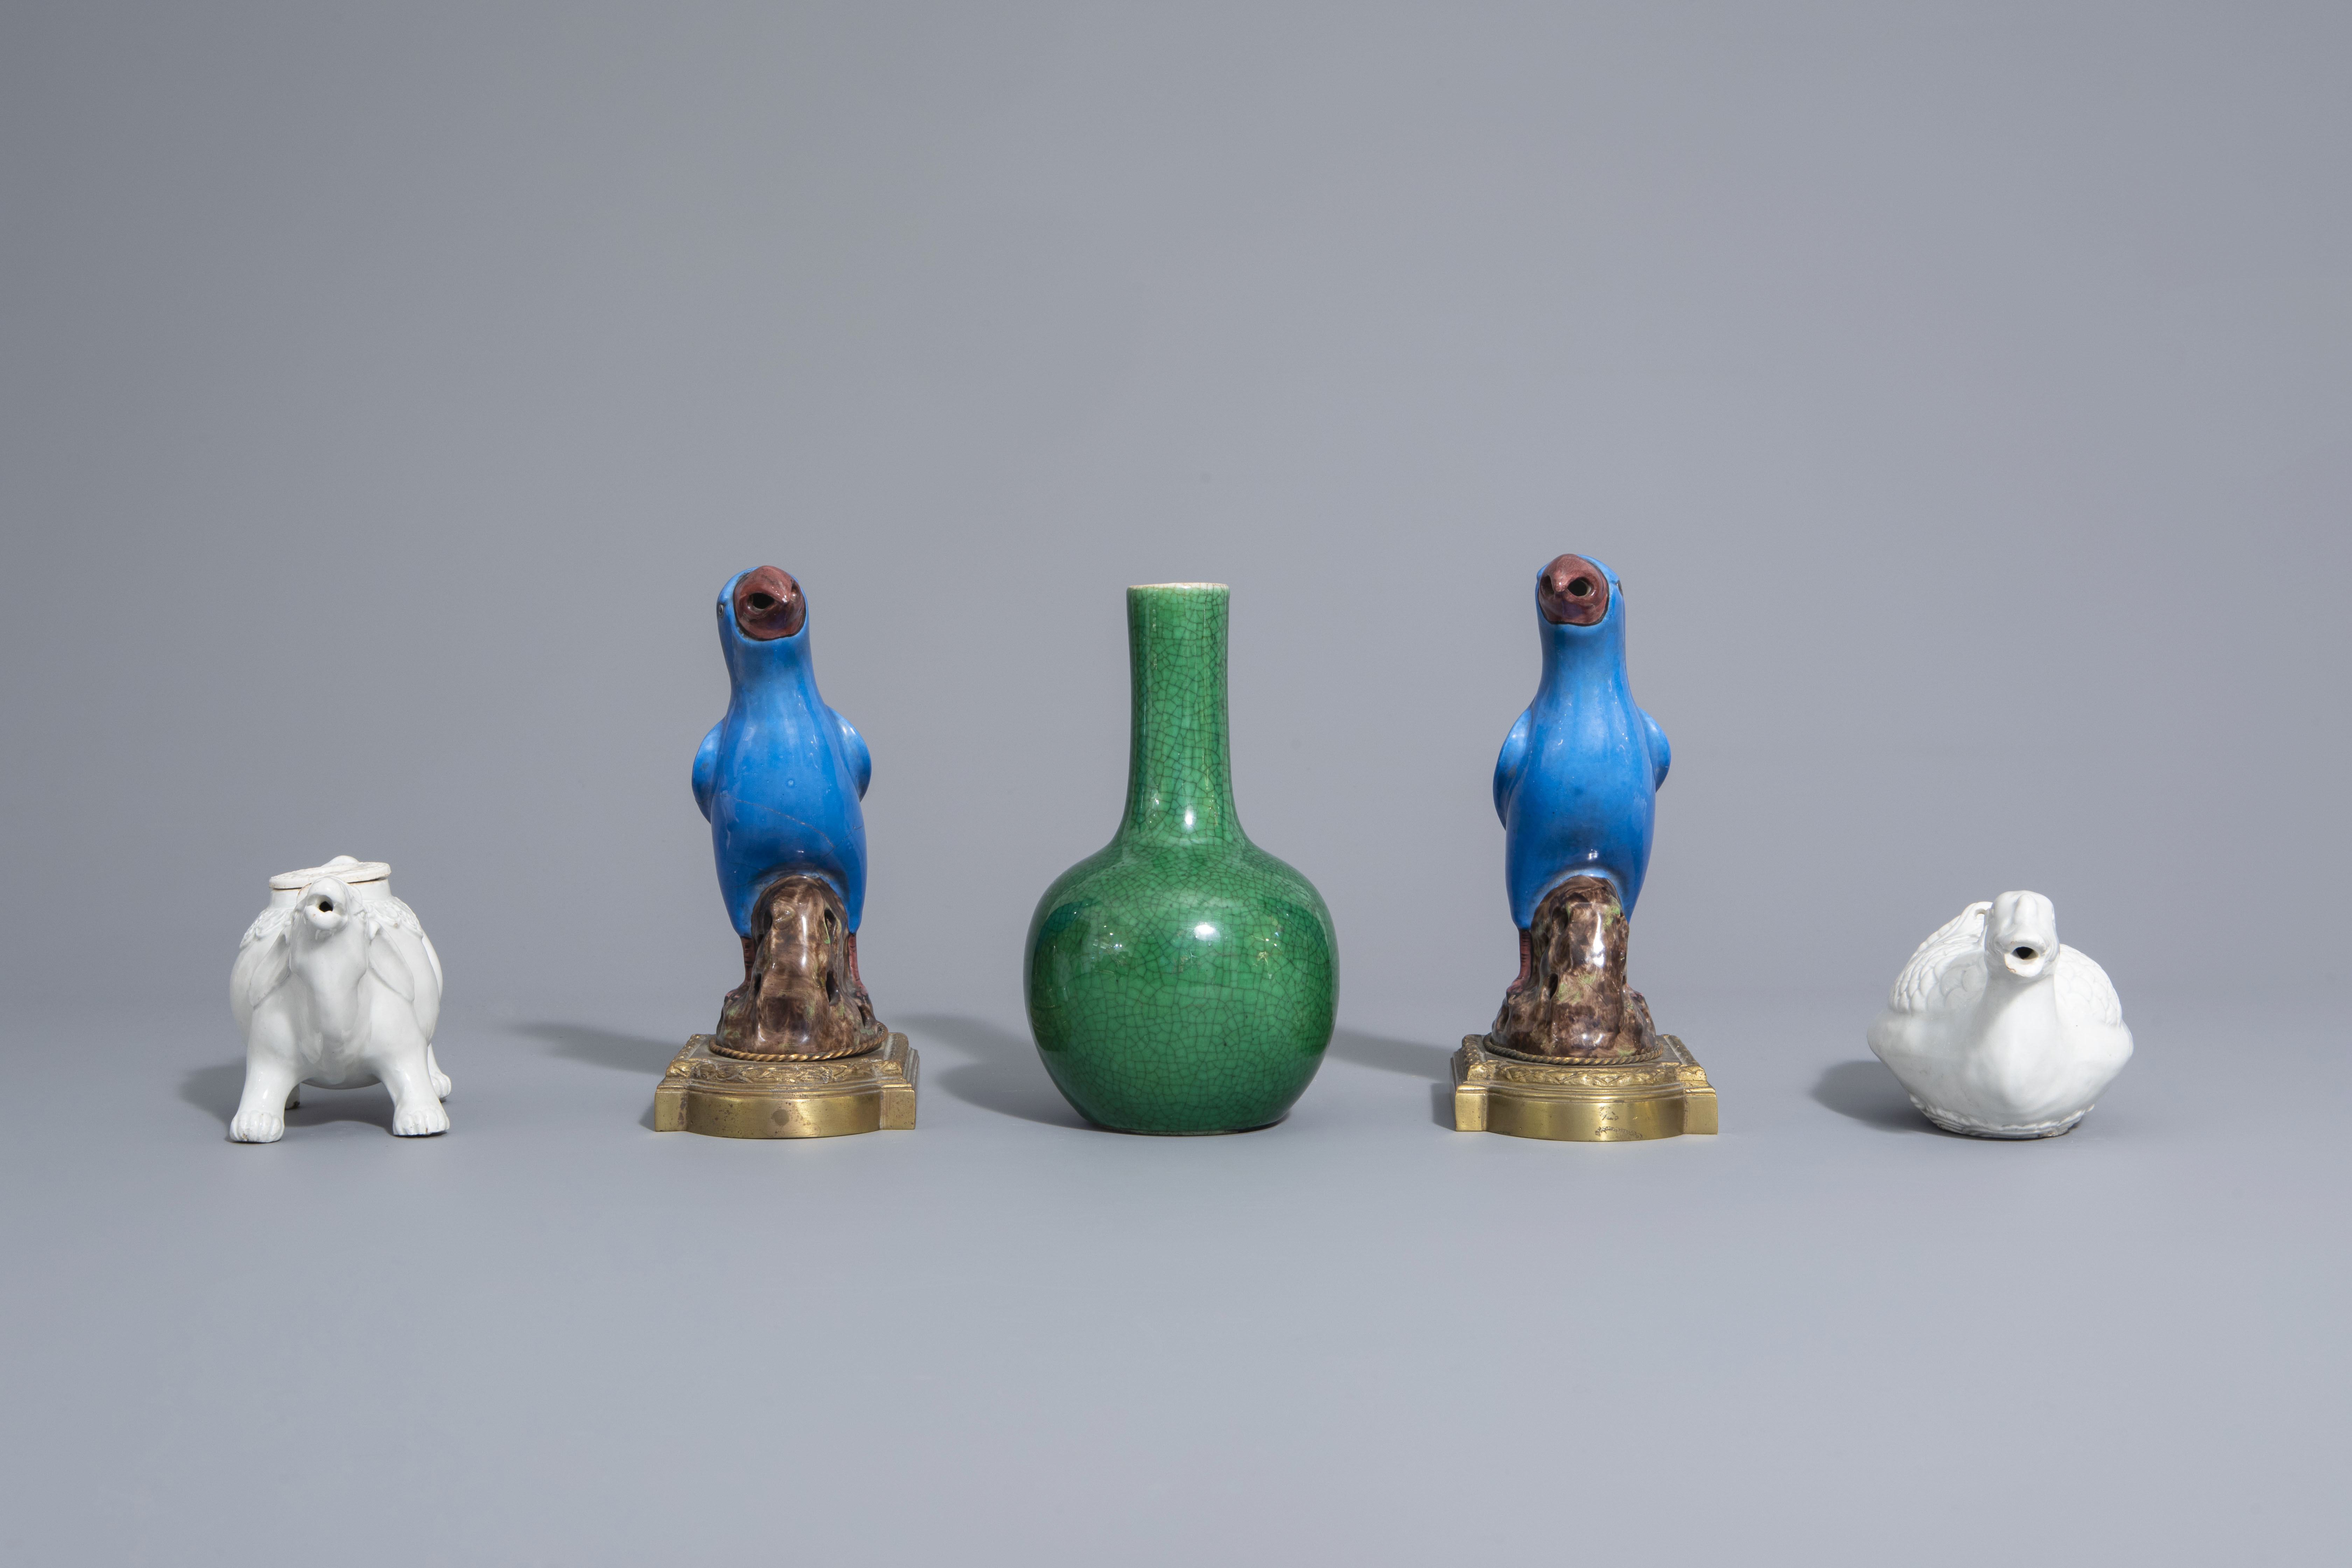 A Chinese monochrome green vase, 2 blanc de Chine teapots & a pair of polychrome birds, 19th/20th C - Image 5 of 7